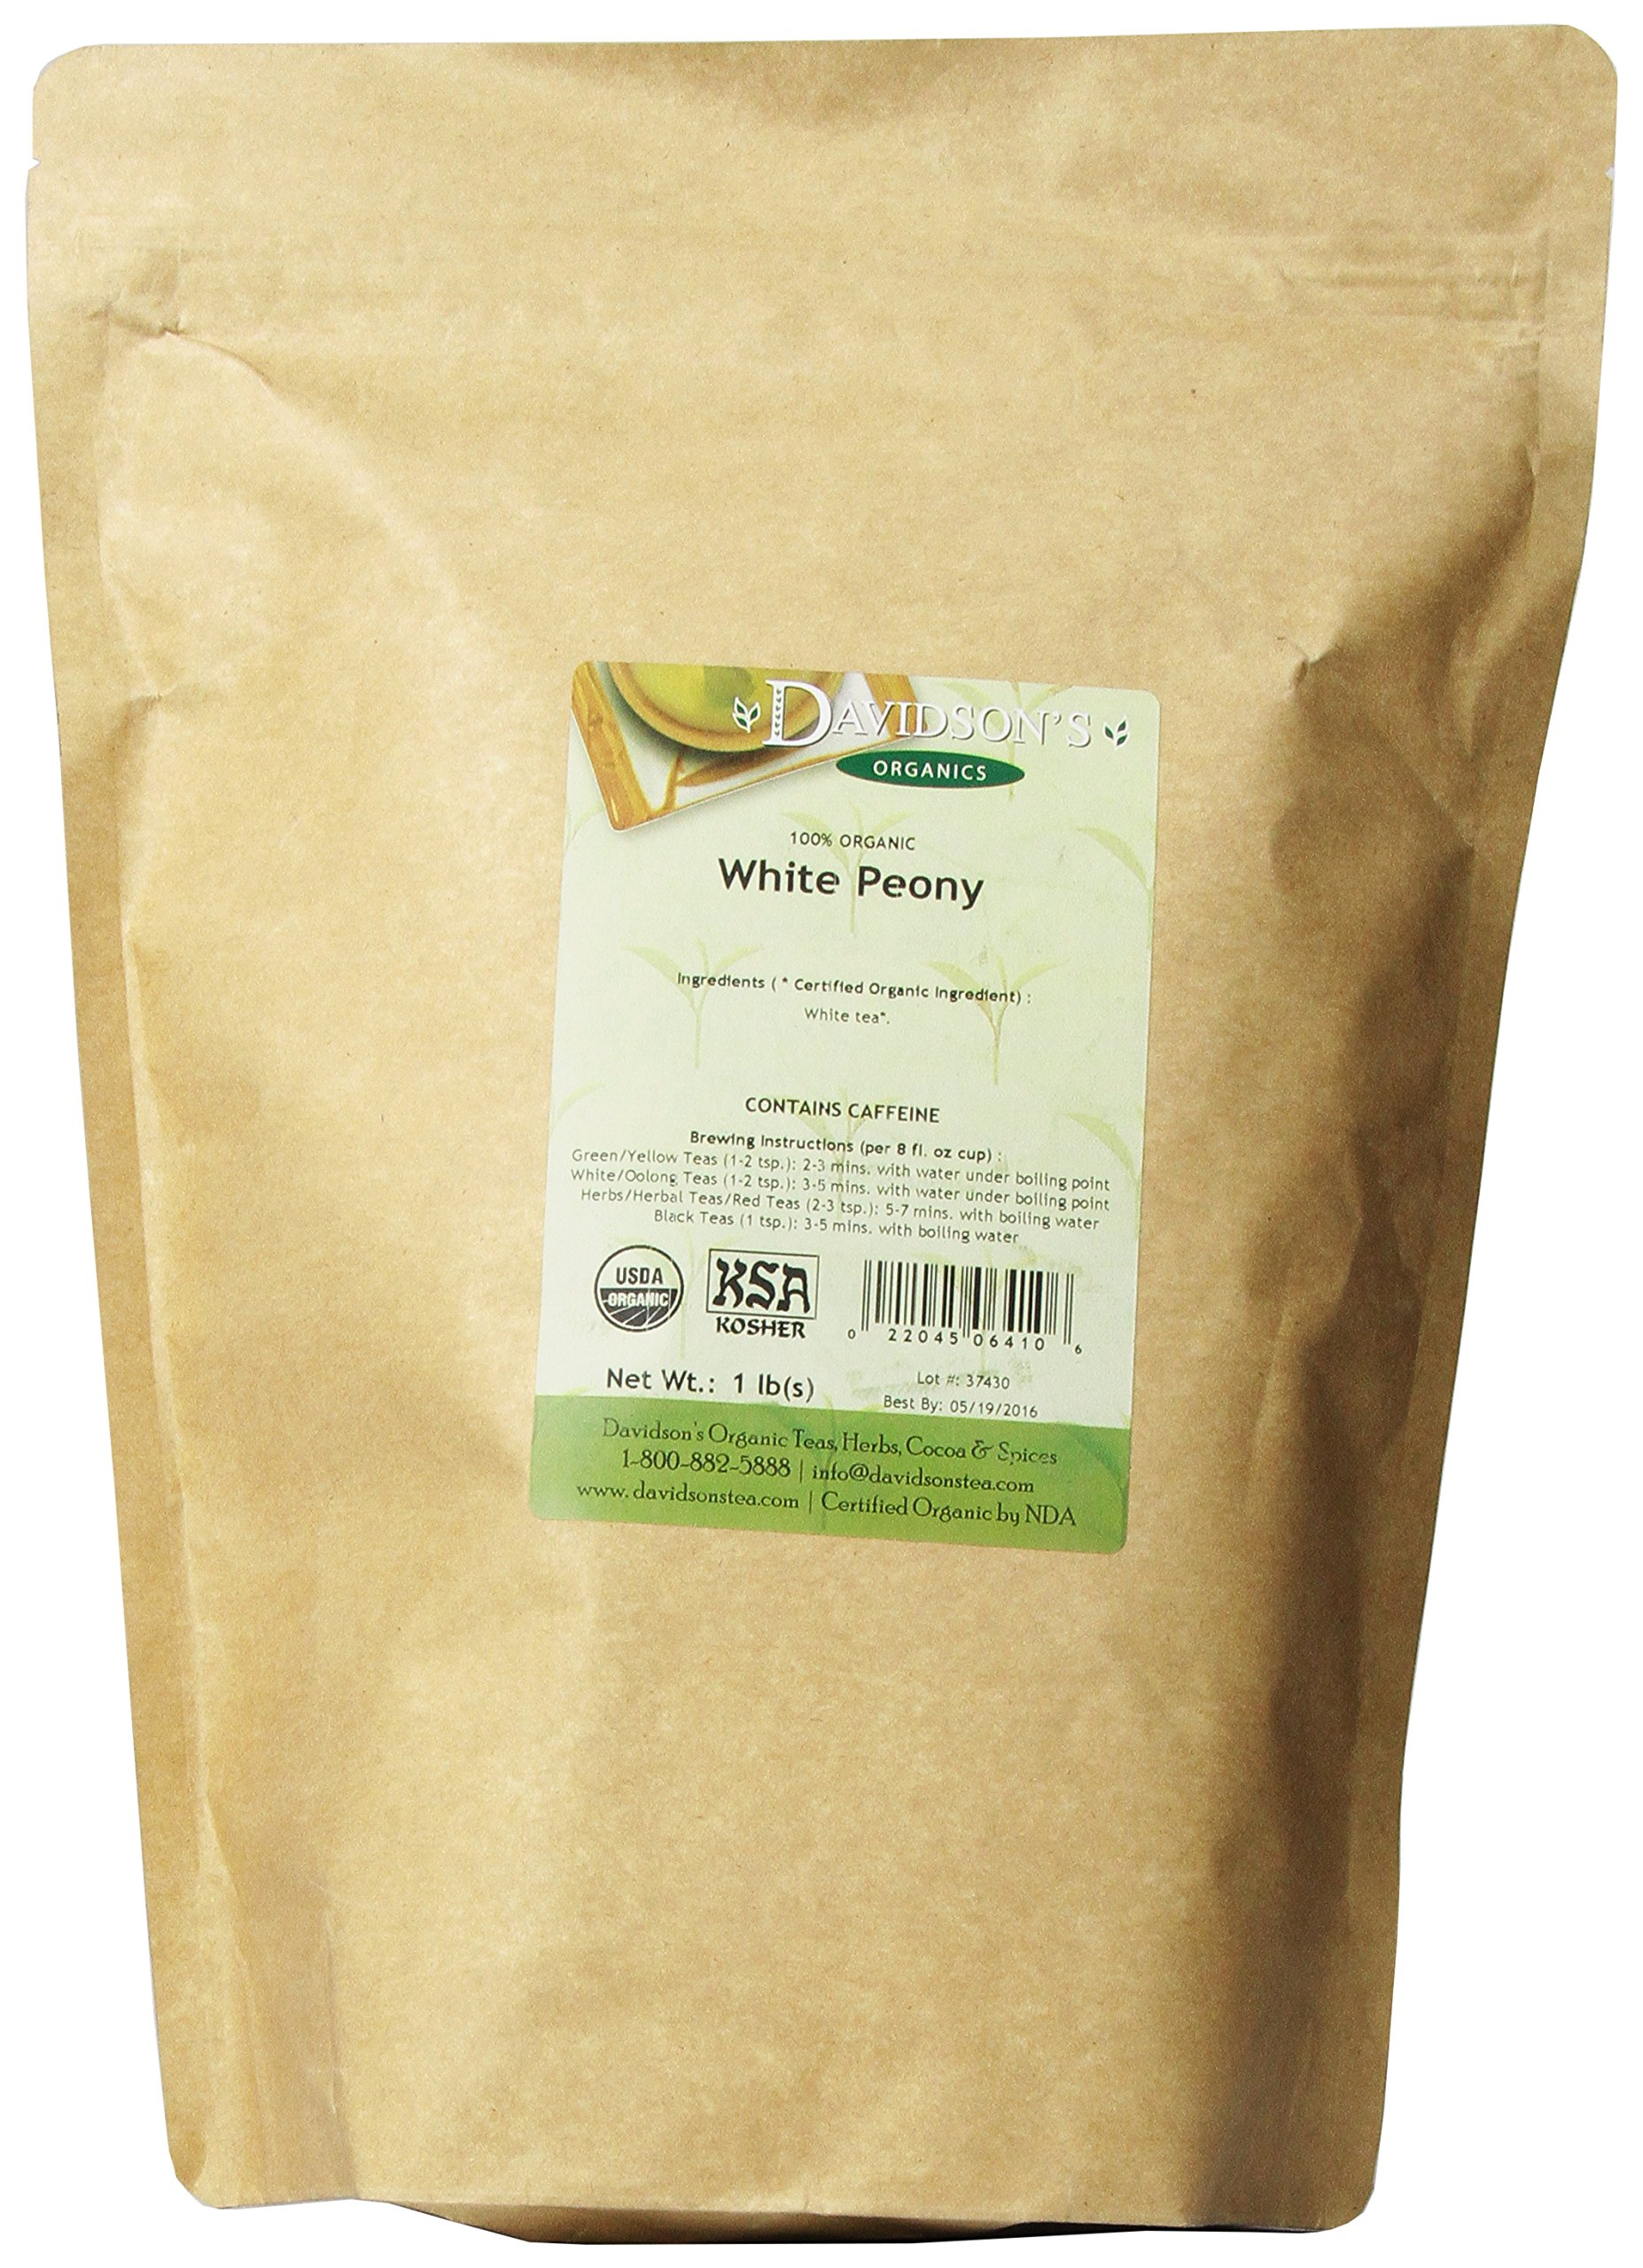 Davidson's Tea Bulk, White Peony, 16-Ounce Bag by Davidson's